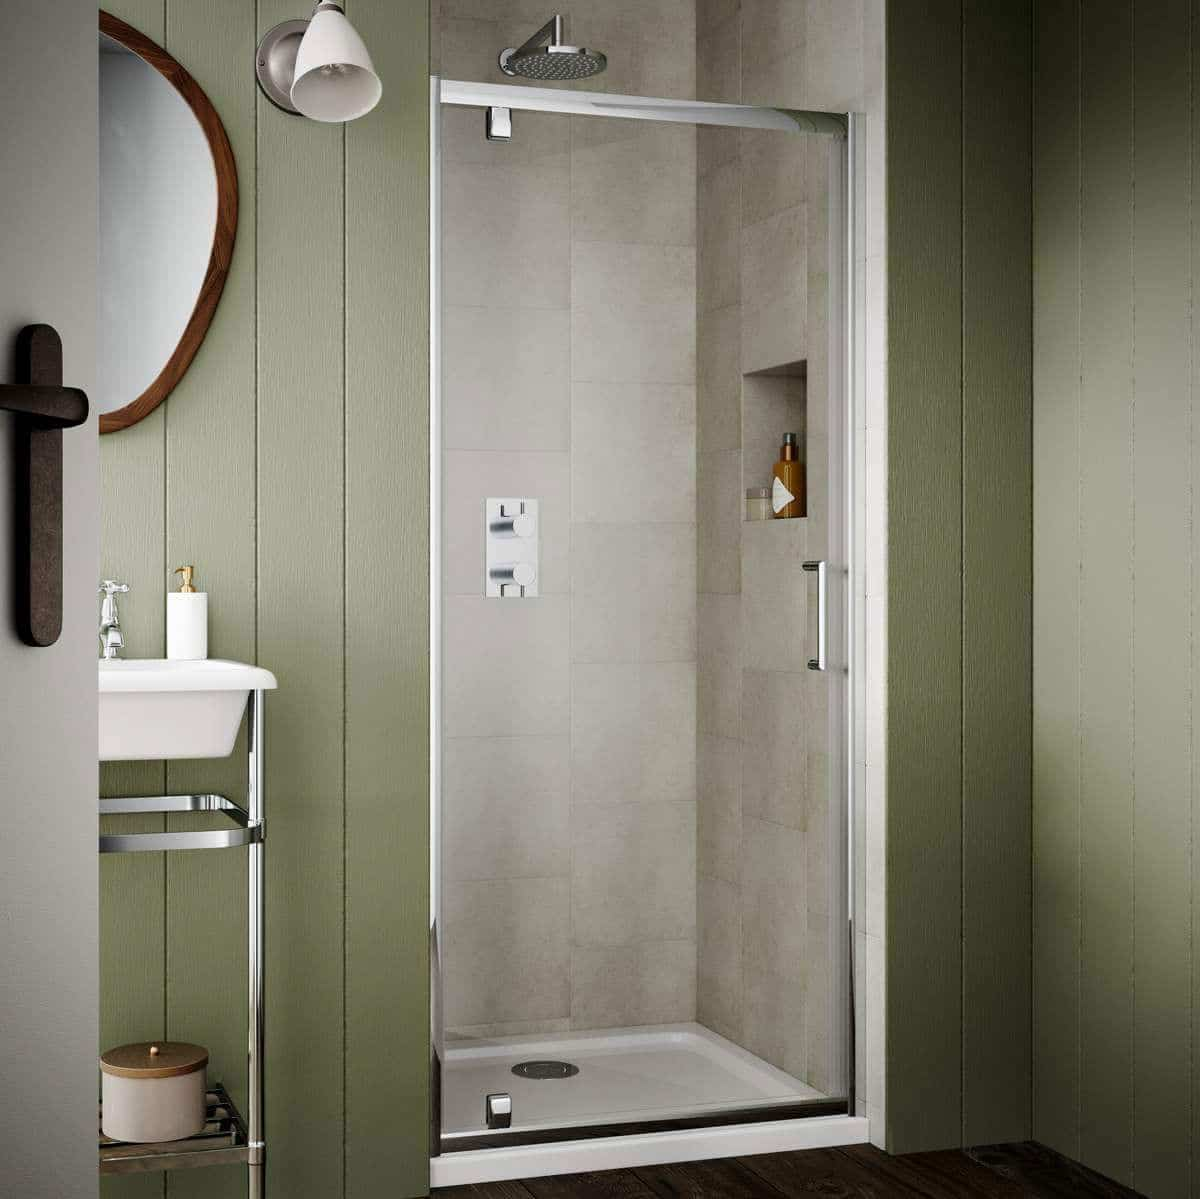 SOS25+SOS96+SOS47 Sommer 6 Pivot Shower Door Chrome